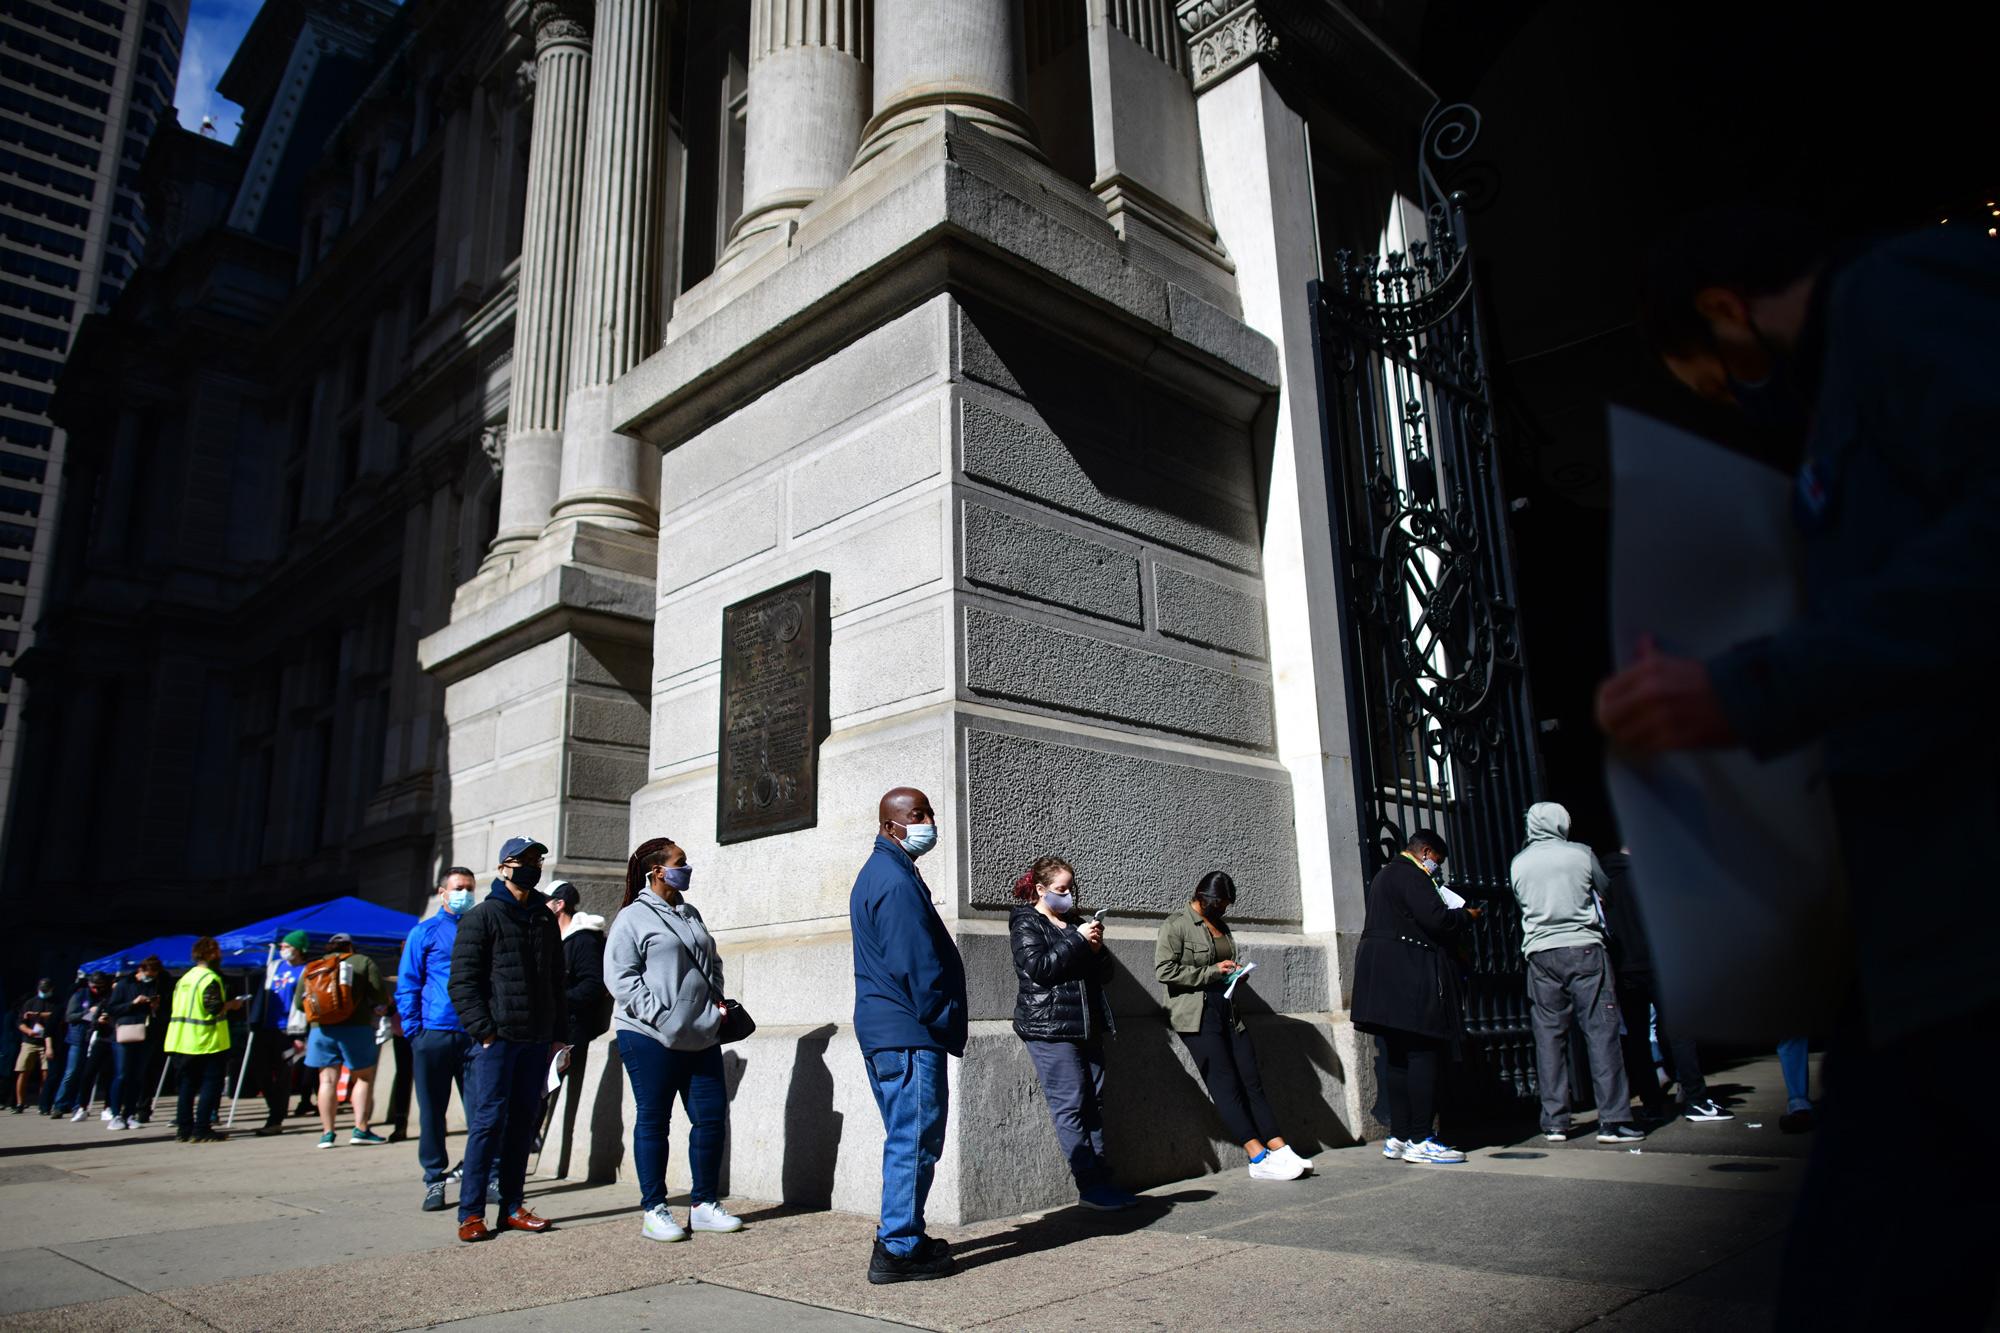 Voters wait in line outside Philadelphia City Hall to cast their early voting ballots at the satellite polling station on October 27 in Philadelphia, Pennsylvania.